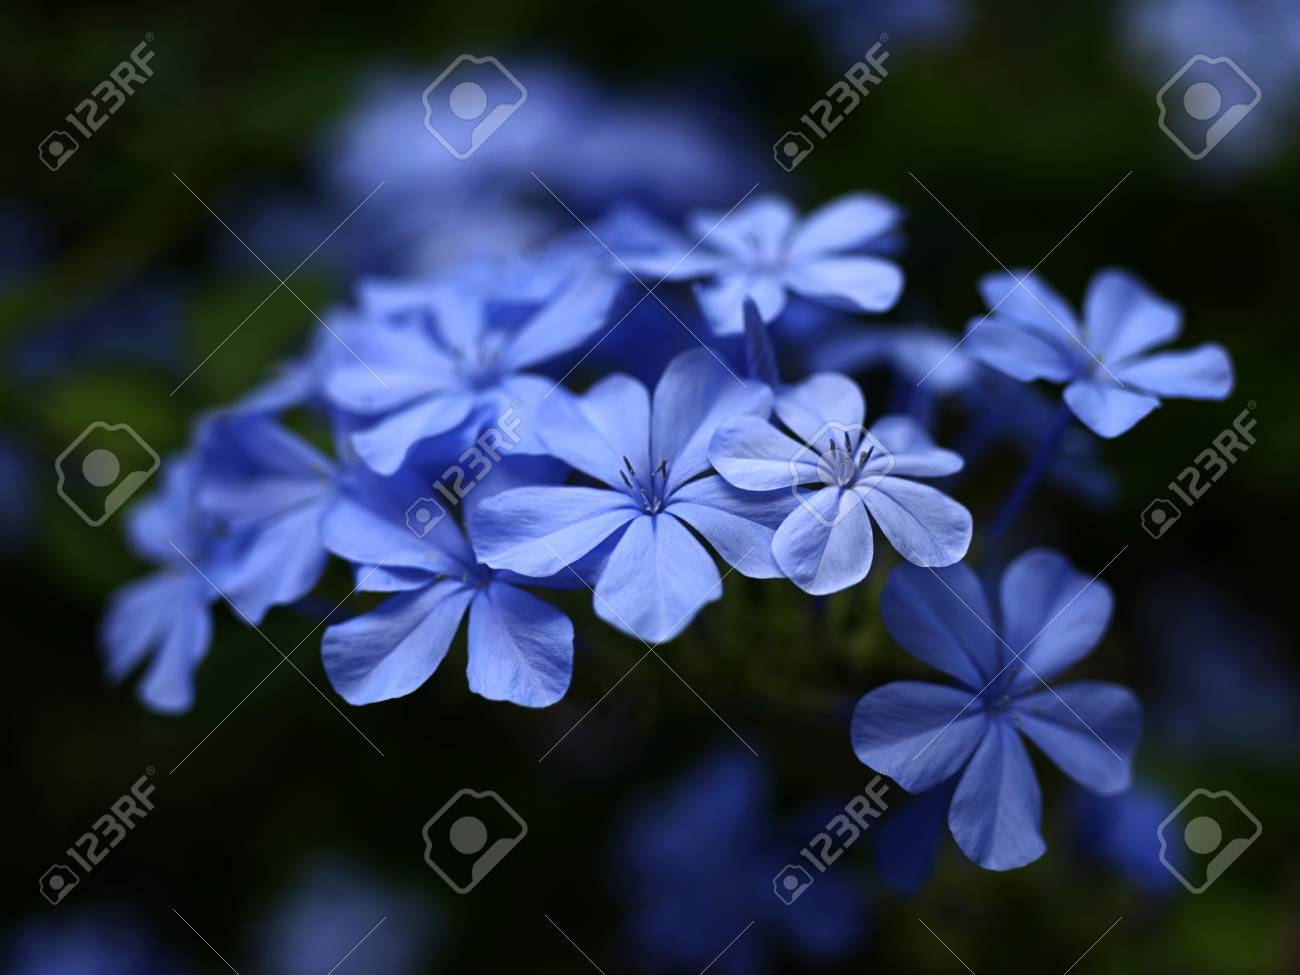 Small Blue Flowers Shallow Depth Of Field Closeup Stock Photo Picture And Royalty Free Image Image 96211661